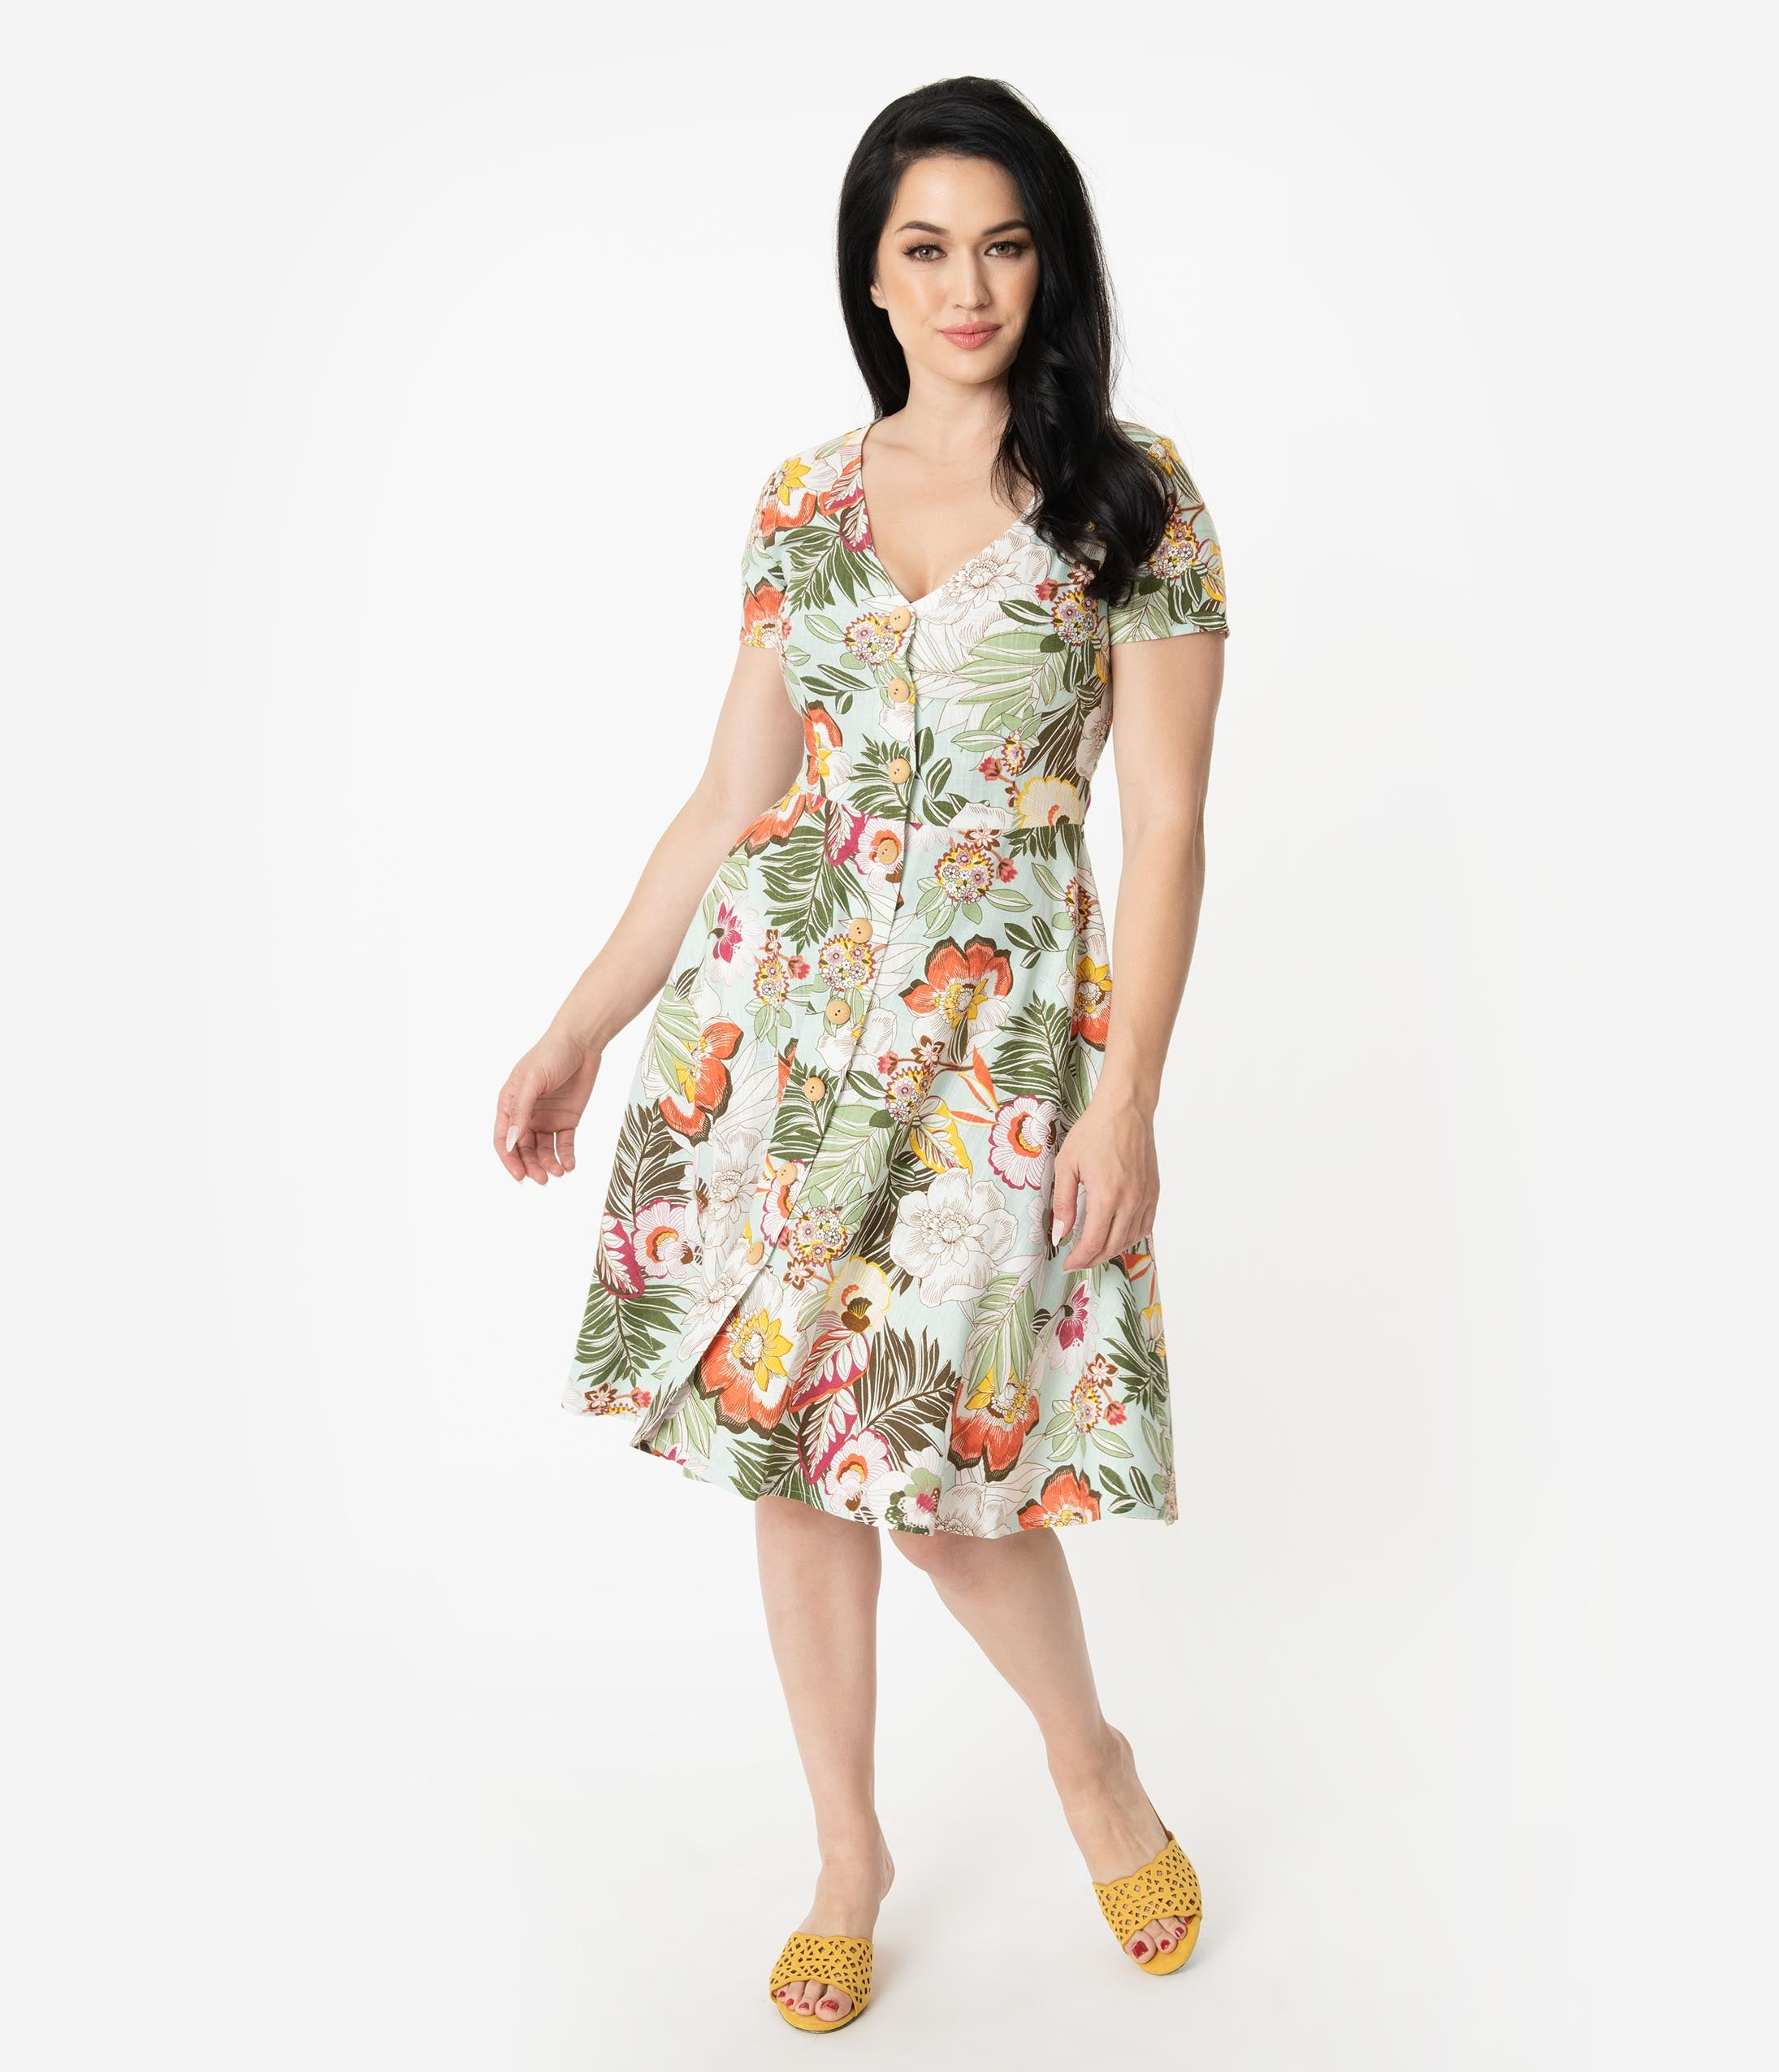 New Fifties Dresses | 50s Inspired Dresses 1950S Style Mint Tropical Floral Print Short Sleeve Button Up Swing Dress $47.00 AT vintagedancer.com